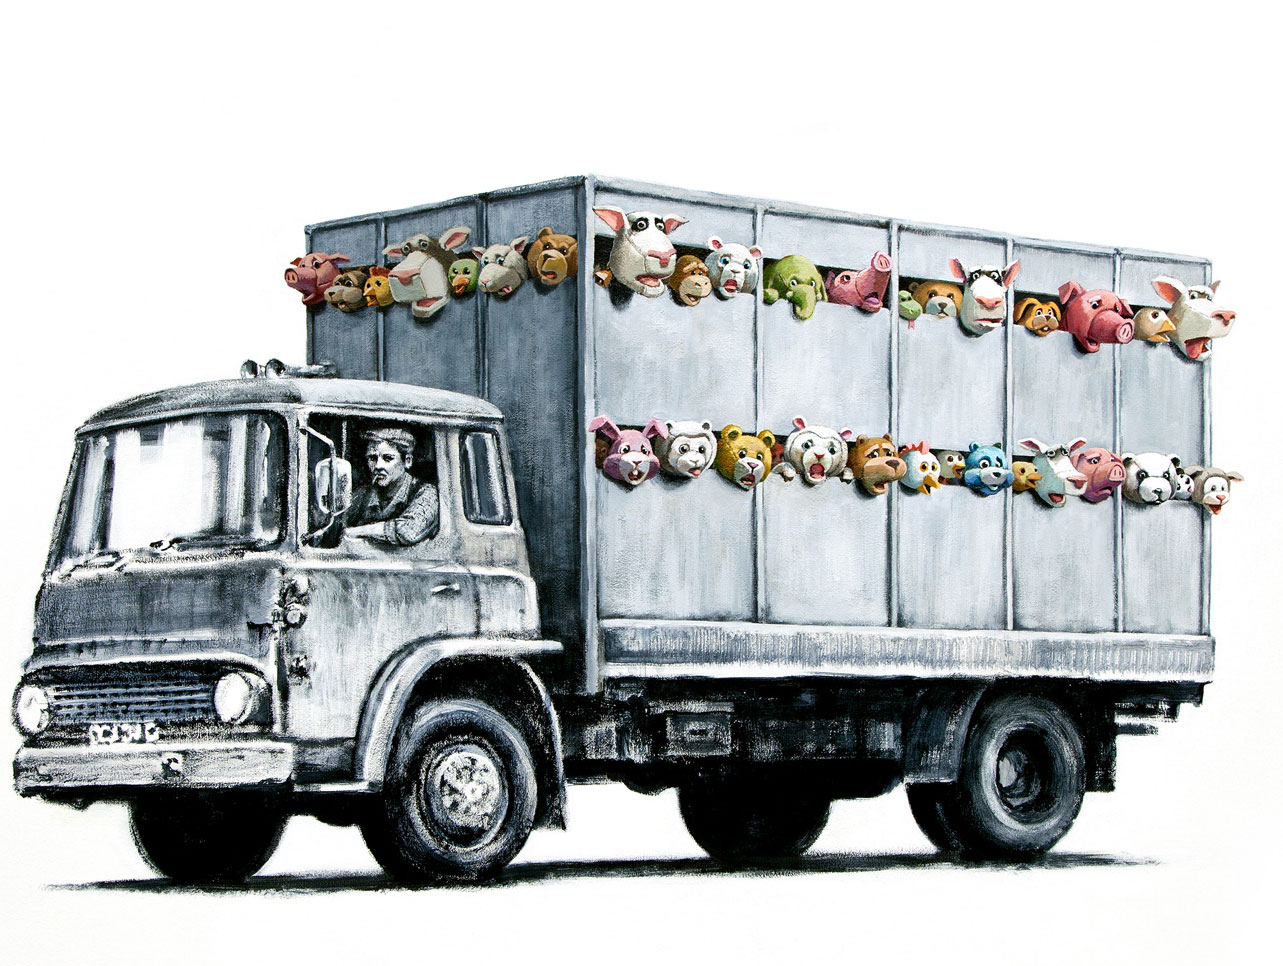 Banksy Meat Truck Illustration: 1-Banksy-meat-truck.jpg